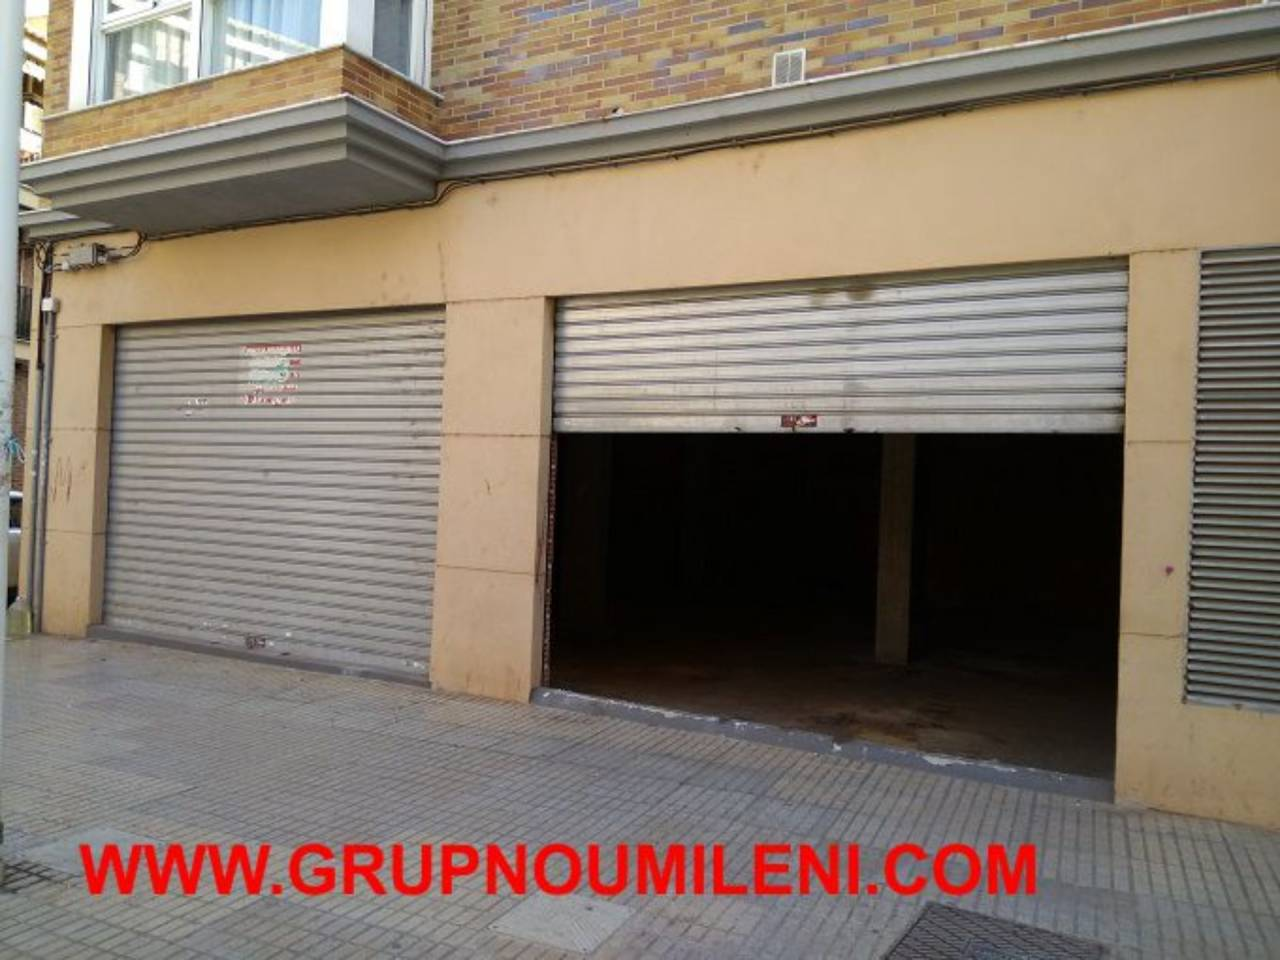 Local Comercial  Calle florida. Superficie total 115 m², local superficie útil 106 m², estado co